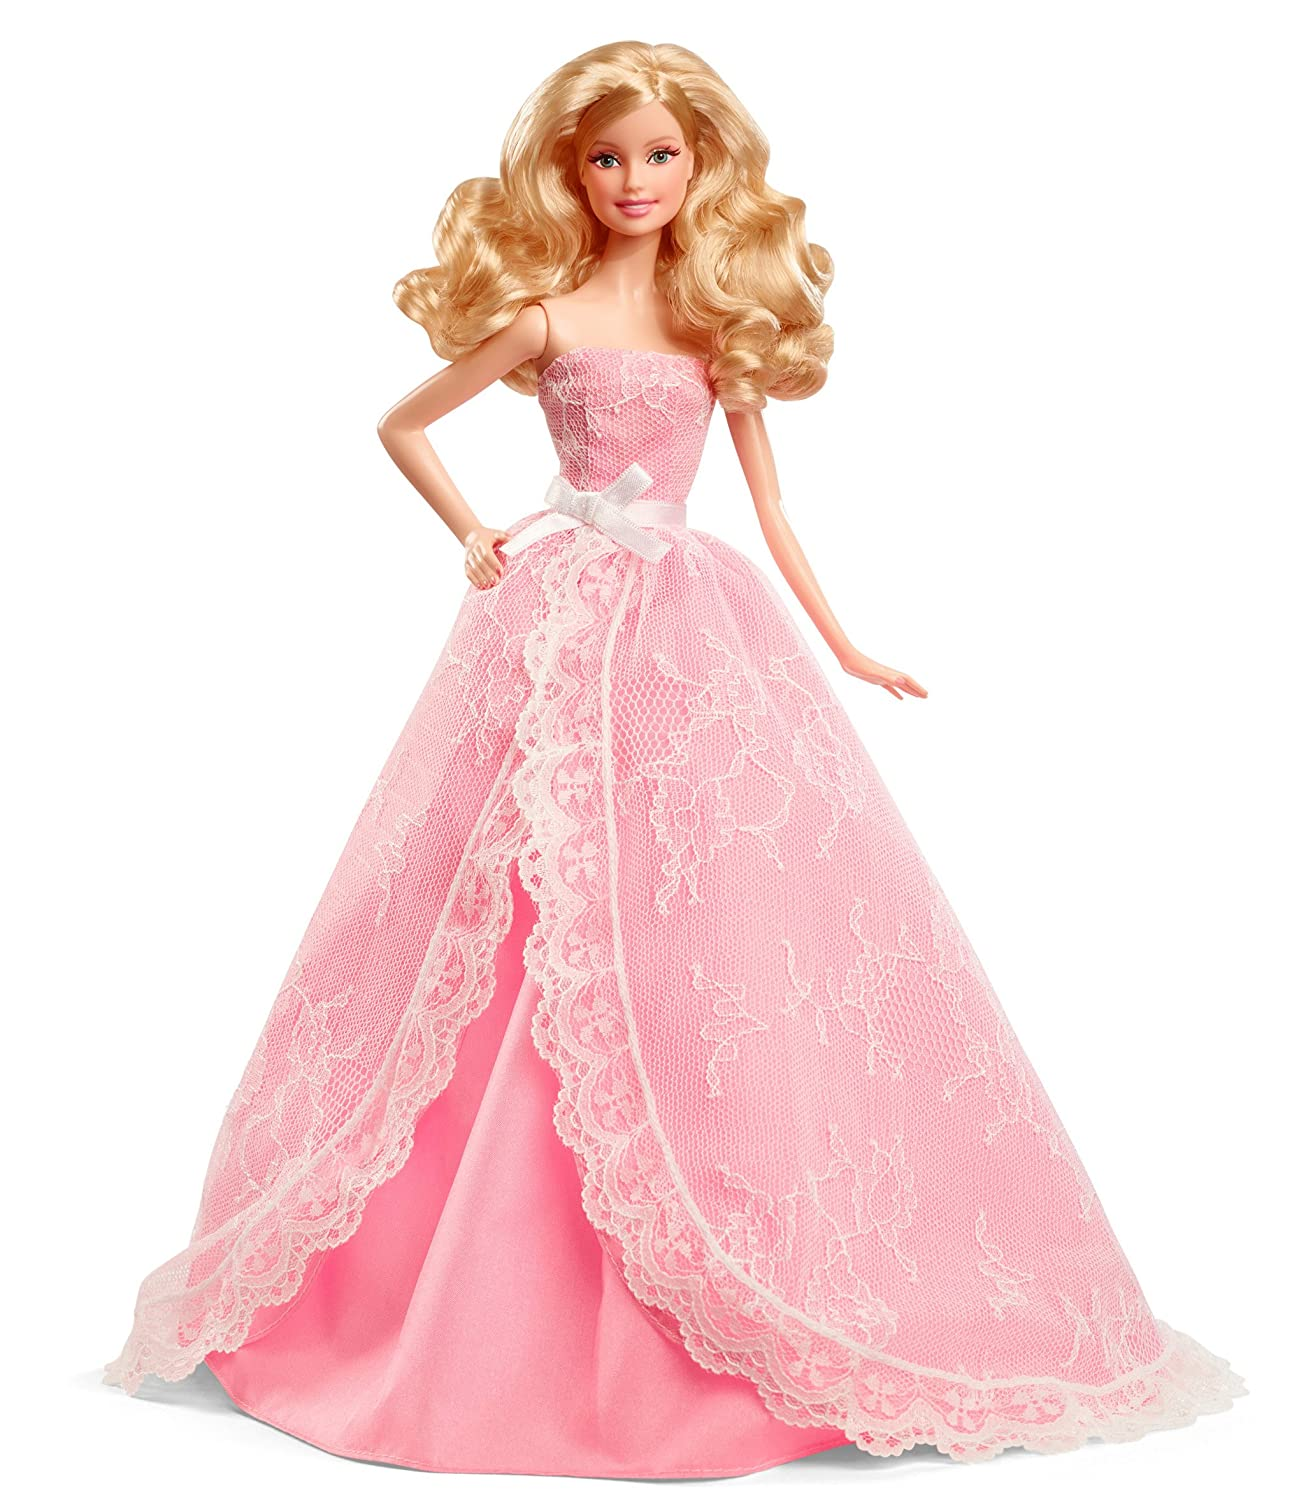 Amazon.com: Barbie 2015 Birthday Wishes Doll (Discontinued by ...